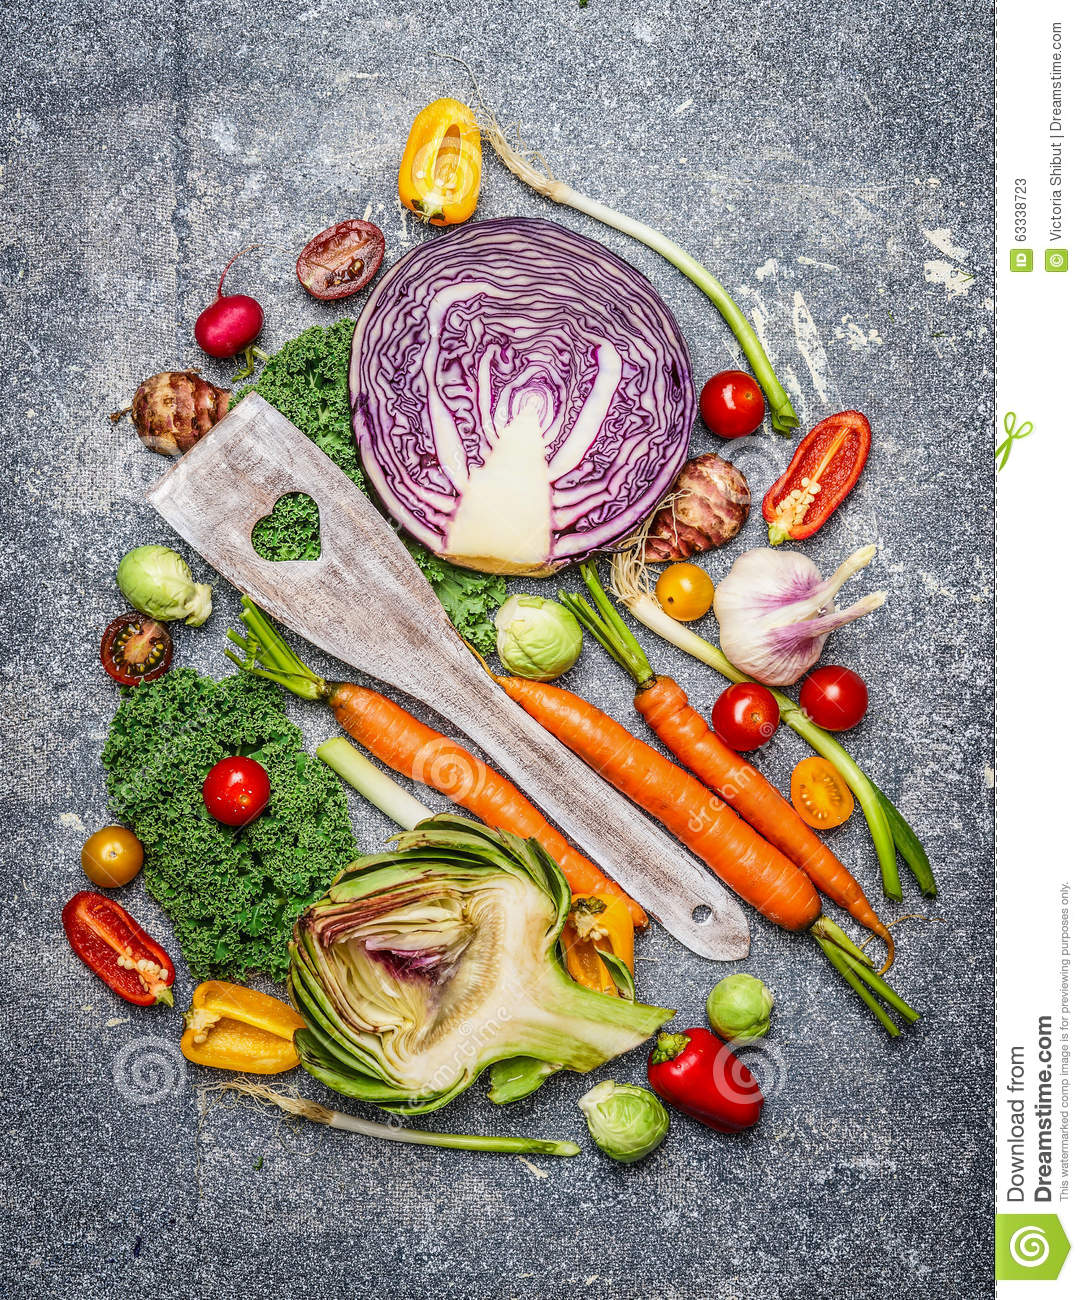 Fresh vegetables with cooking spoon composing on rustic background, top view.